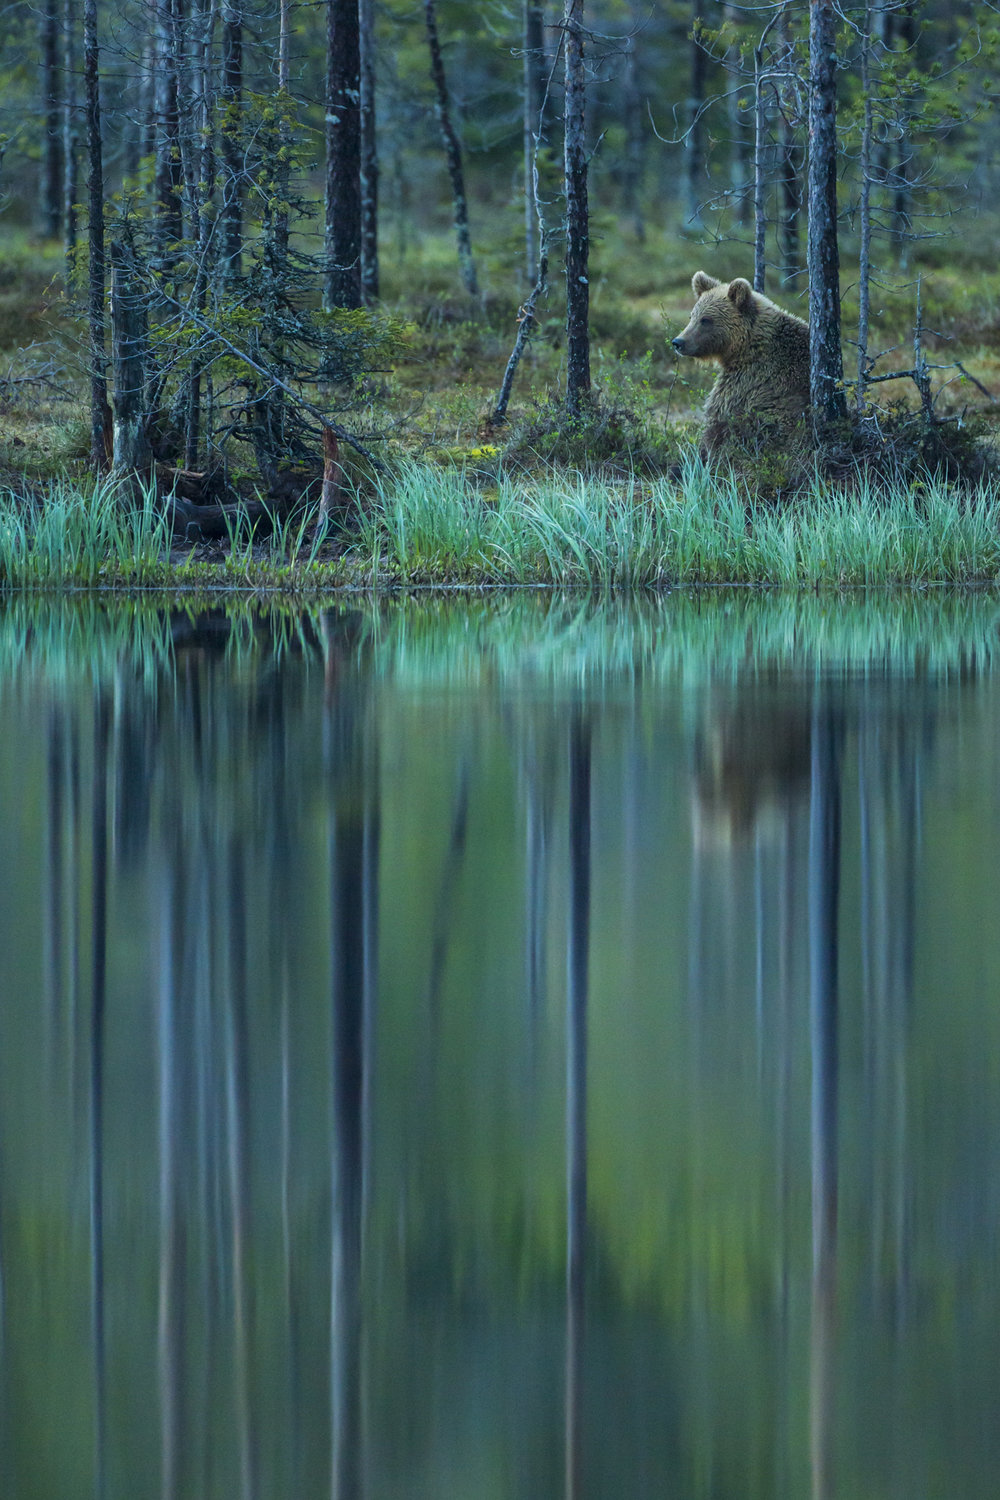 A European brown bear on the edge of a forest pool, Finland.